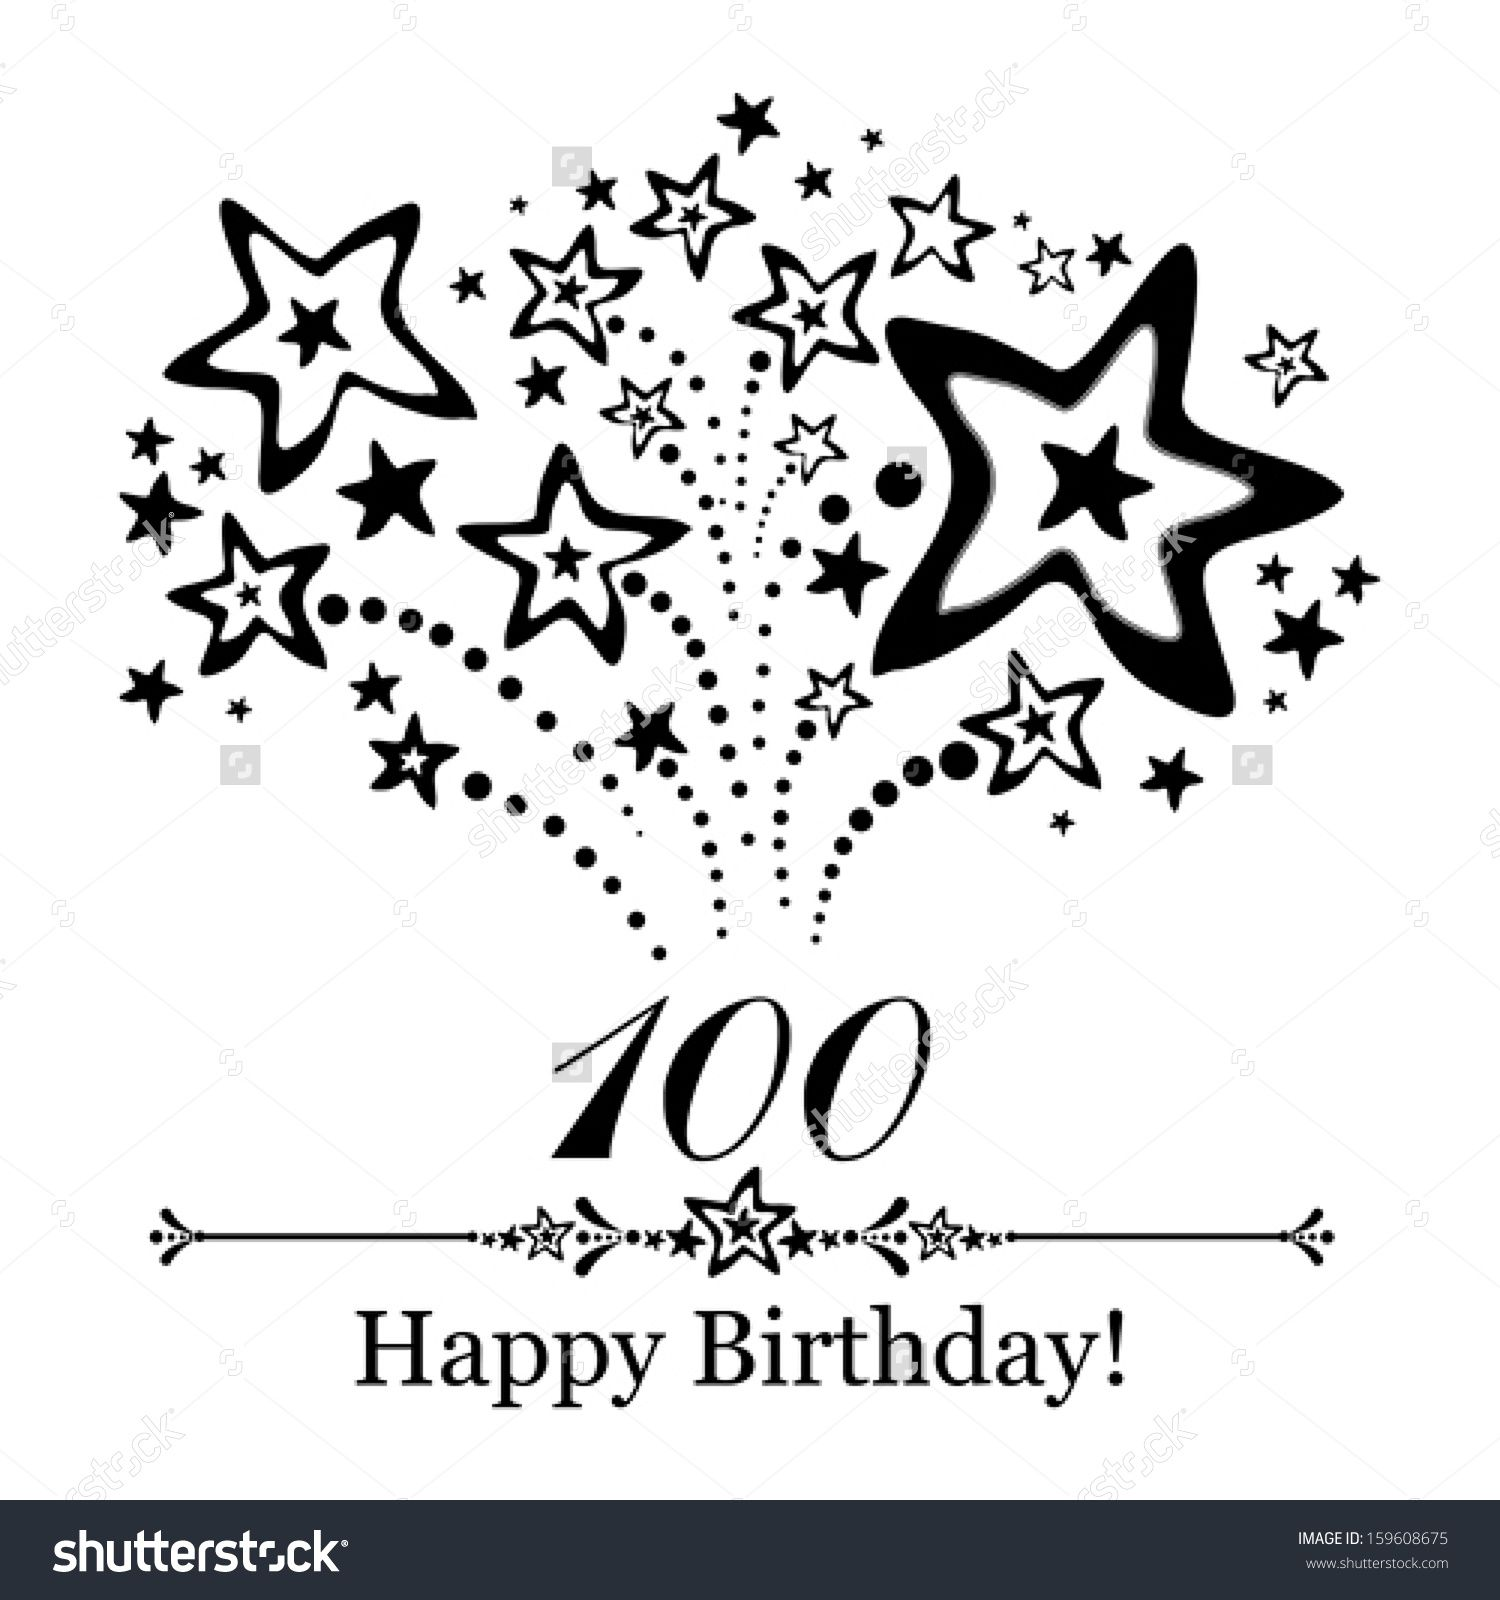 Image Result For Happy 100th Birthday Cards Happy 100th Birthday 100th Birthday Card Cards